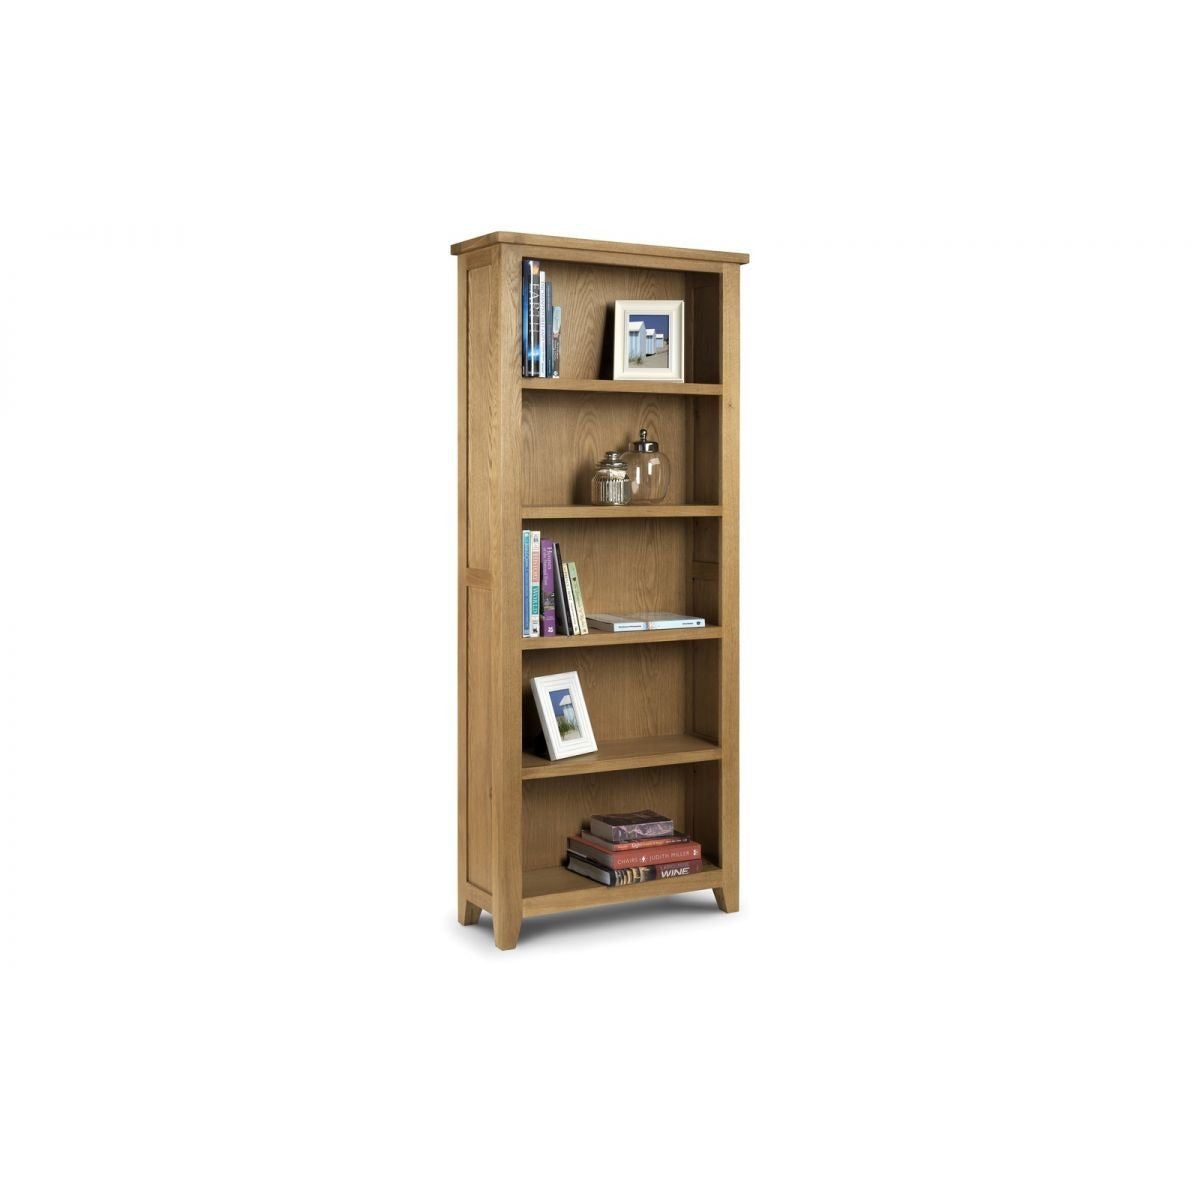 Astoria Oak Tall Bookcase - Perfectly Home Interiors